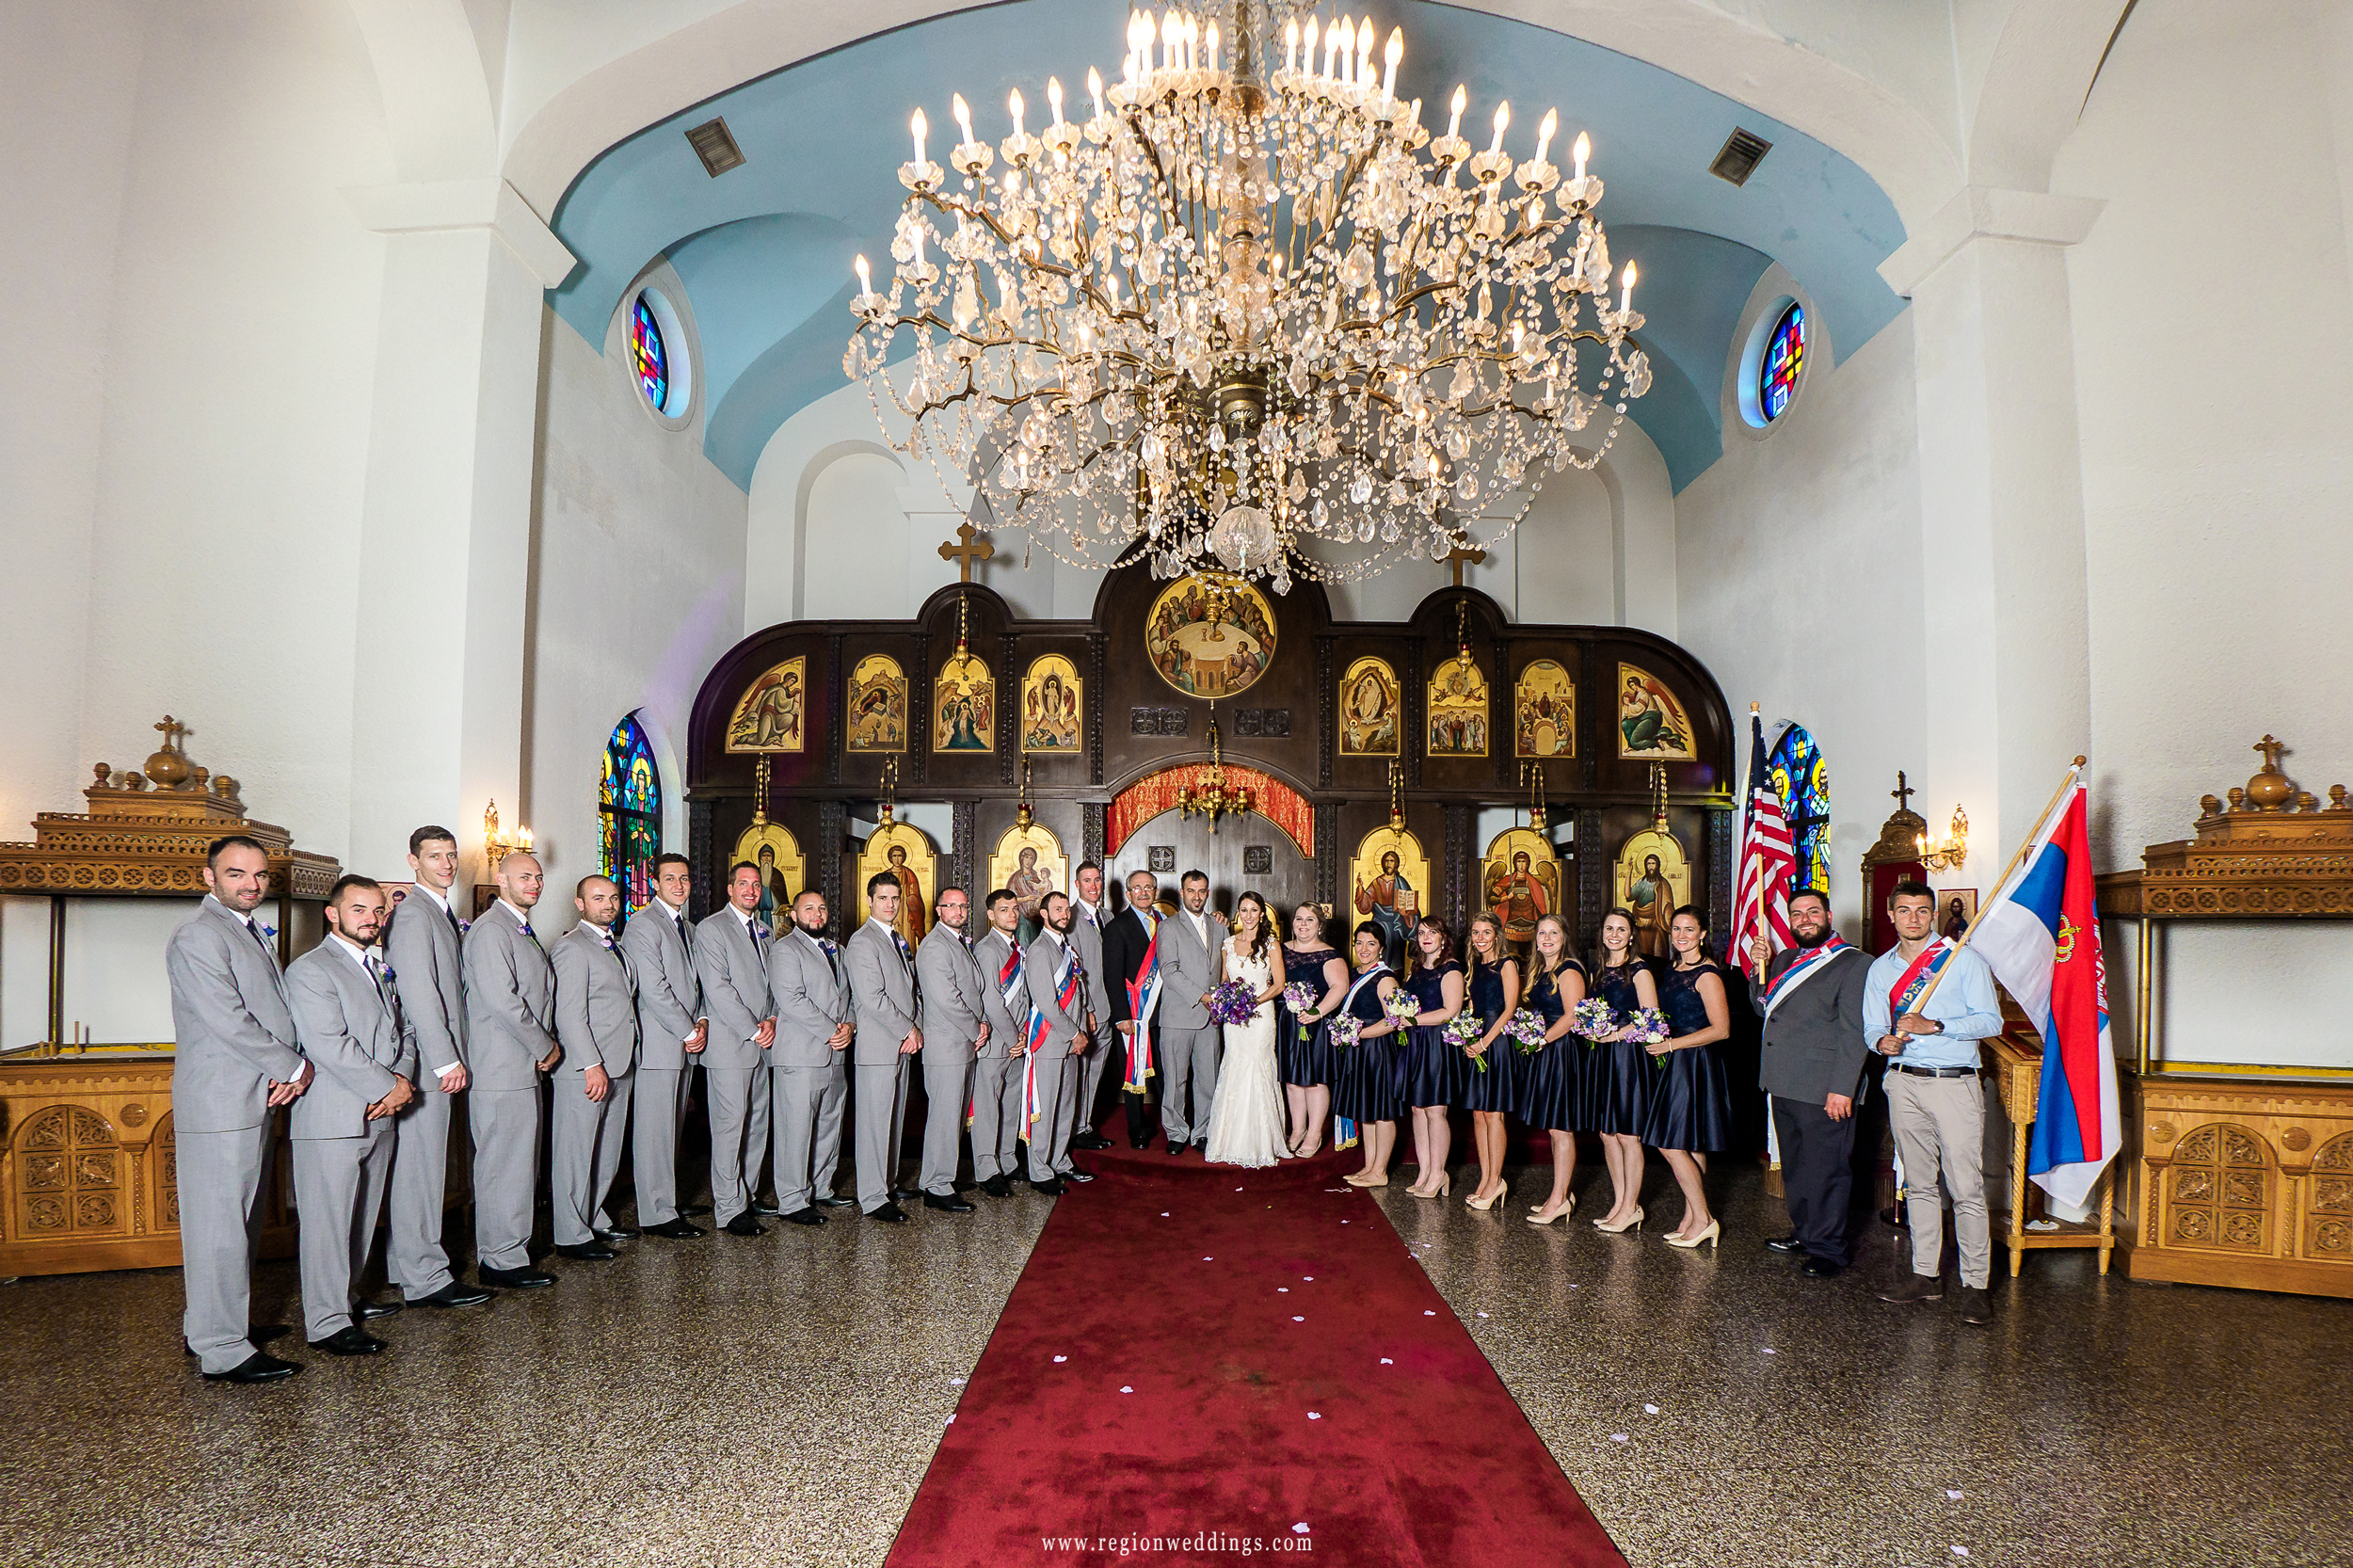 Wedding party group photo at St. Simeon Serbian Orthodox Church in Chicago, IL.